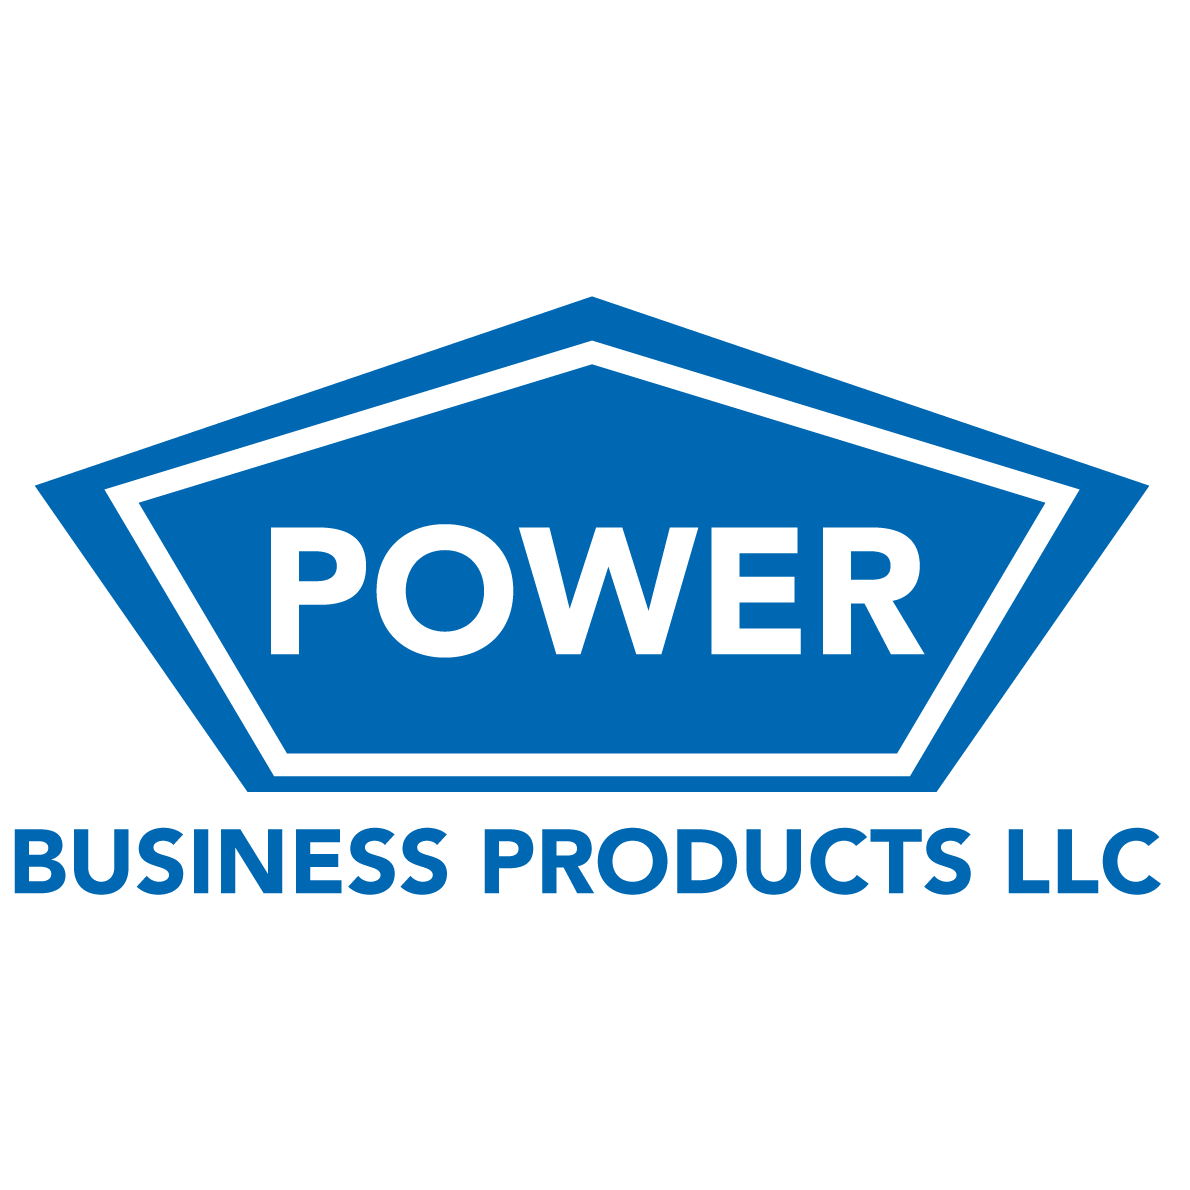 Power Business Products LLC - Matthews, NC 28105 - (704)604-2844 | ShowMeLocal.com